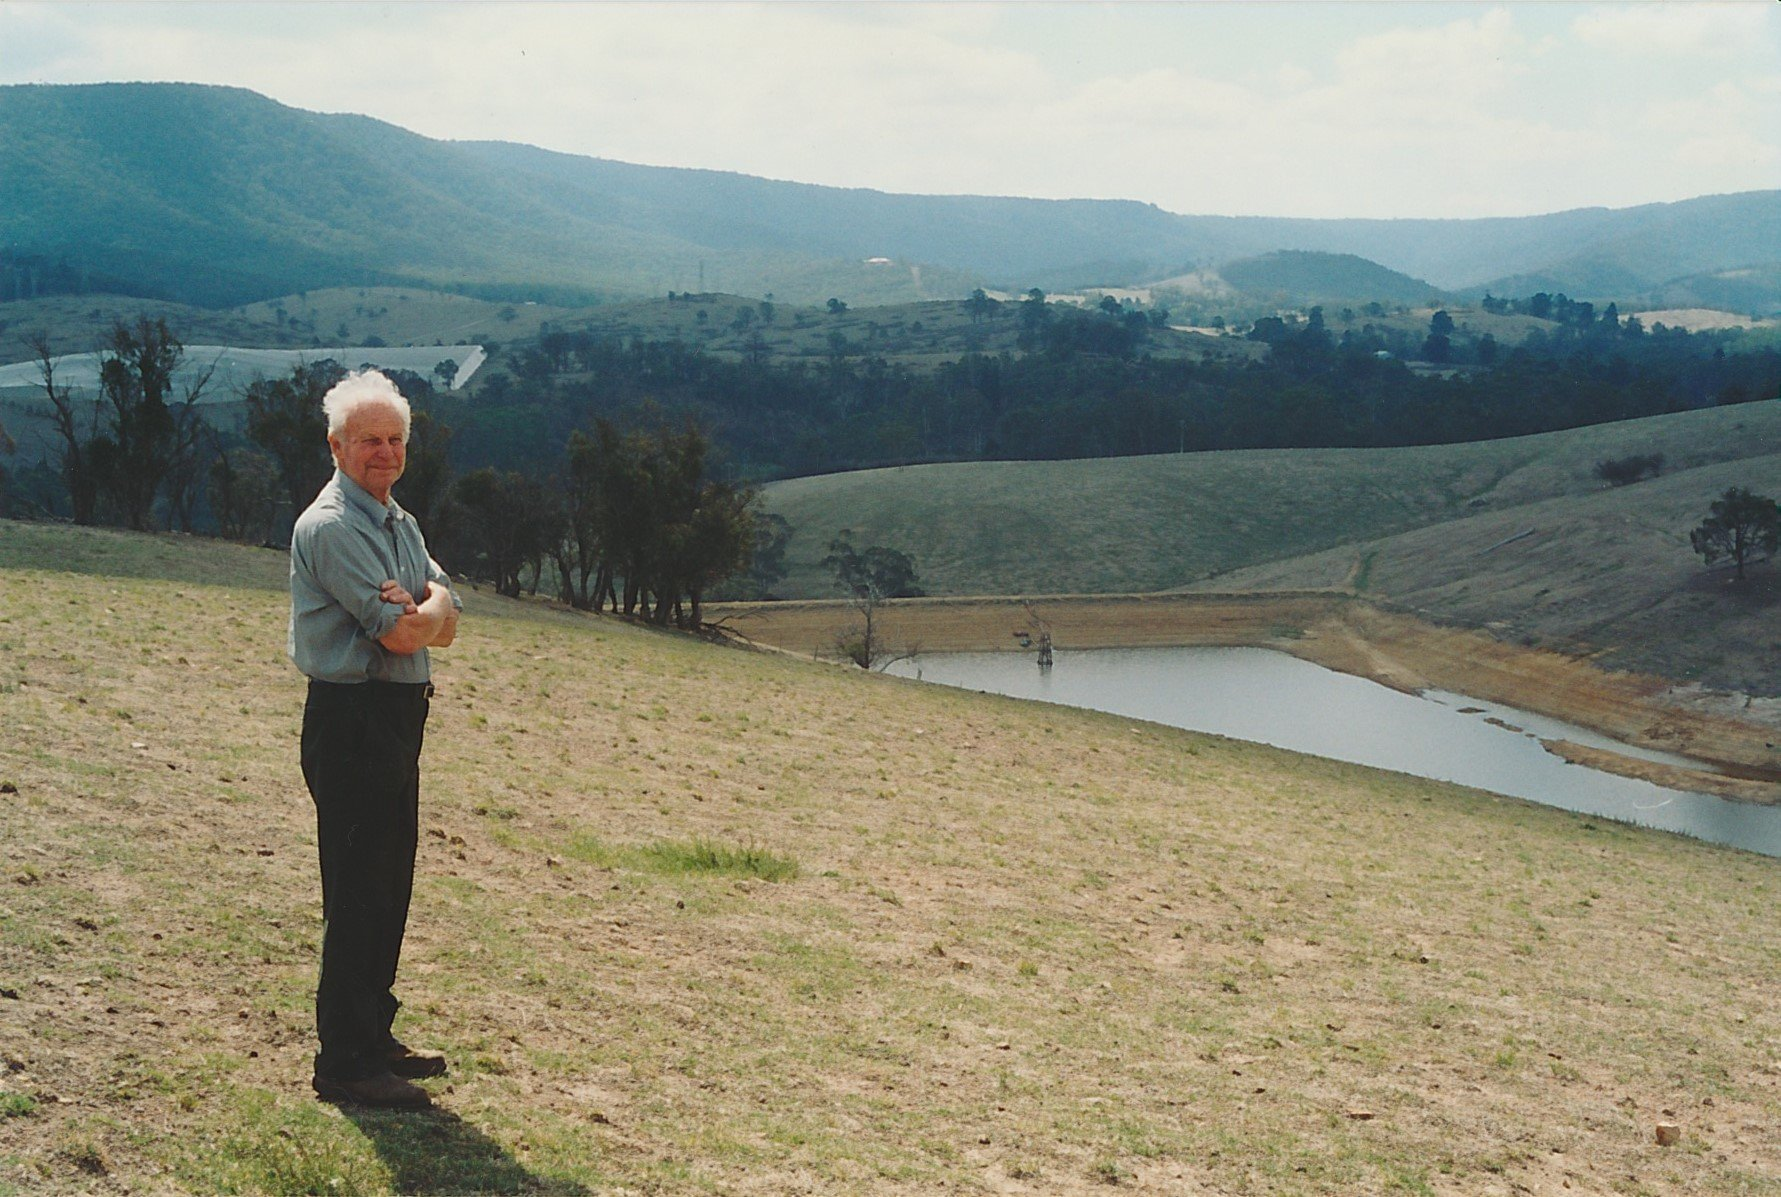 The author's friend, Lindsay George Apted (1922-2010) overlooking the Big Dam at 'Glen Ard' towards the headwaters of the Arthurs Creek and Mount Sugarloaf.  Bruce G. Draper, November 2003